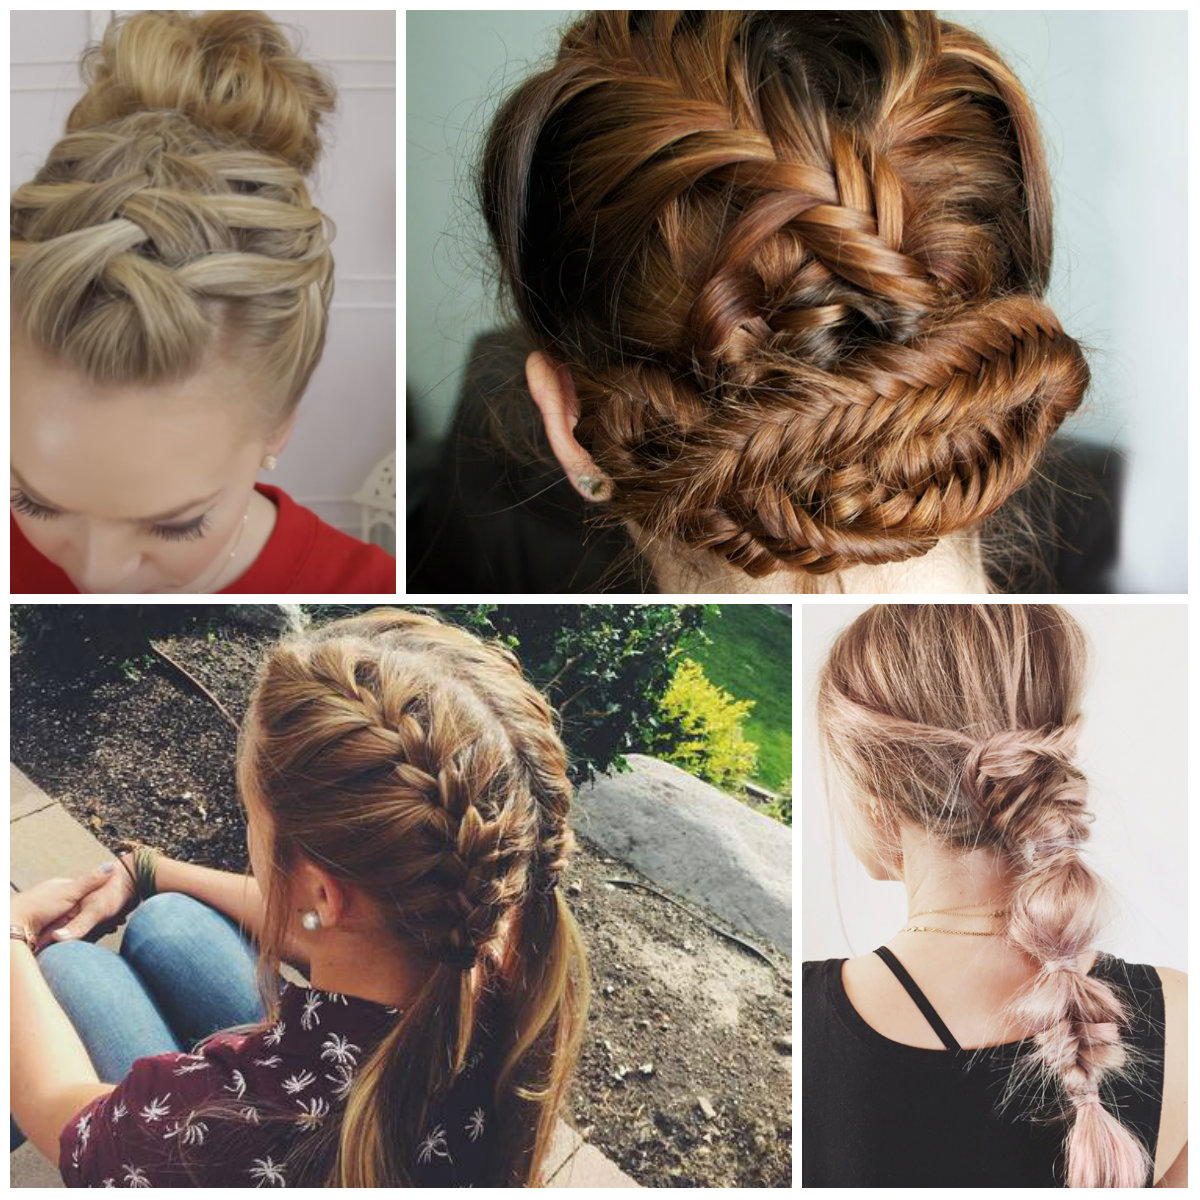 Flattering Long Hairstyles for 2022